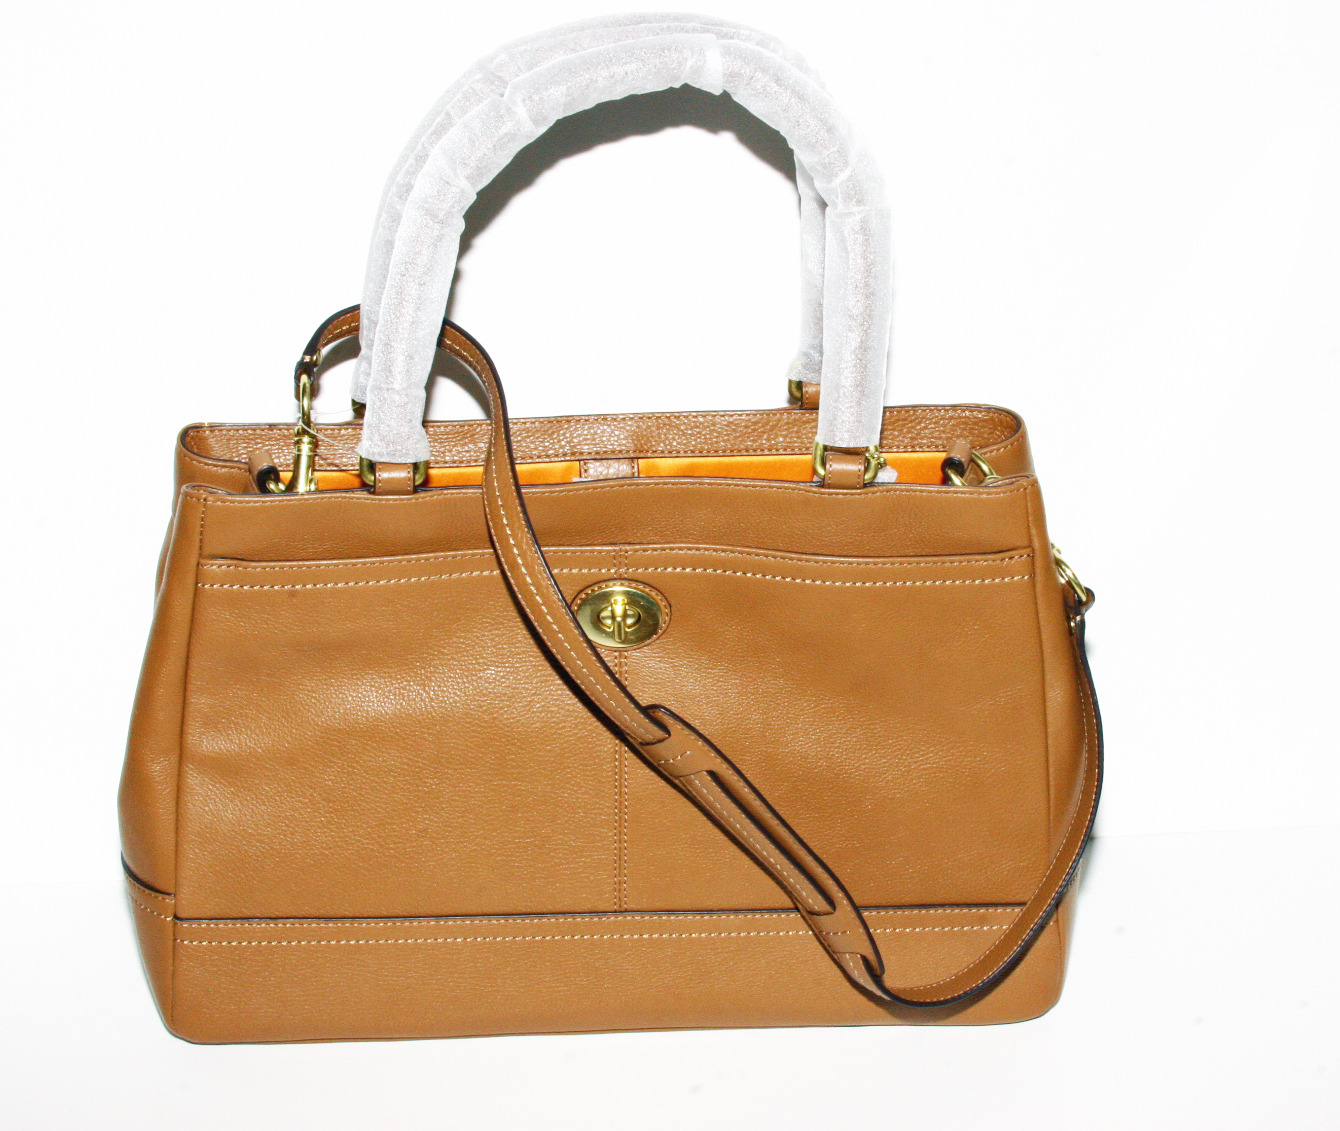 Coach Handbag Leather Tan Ebay